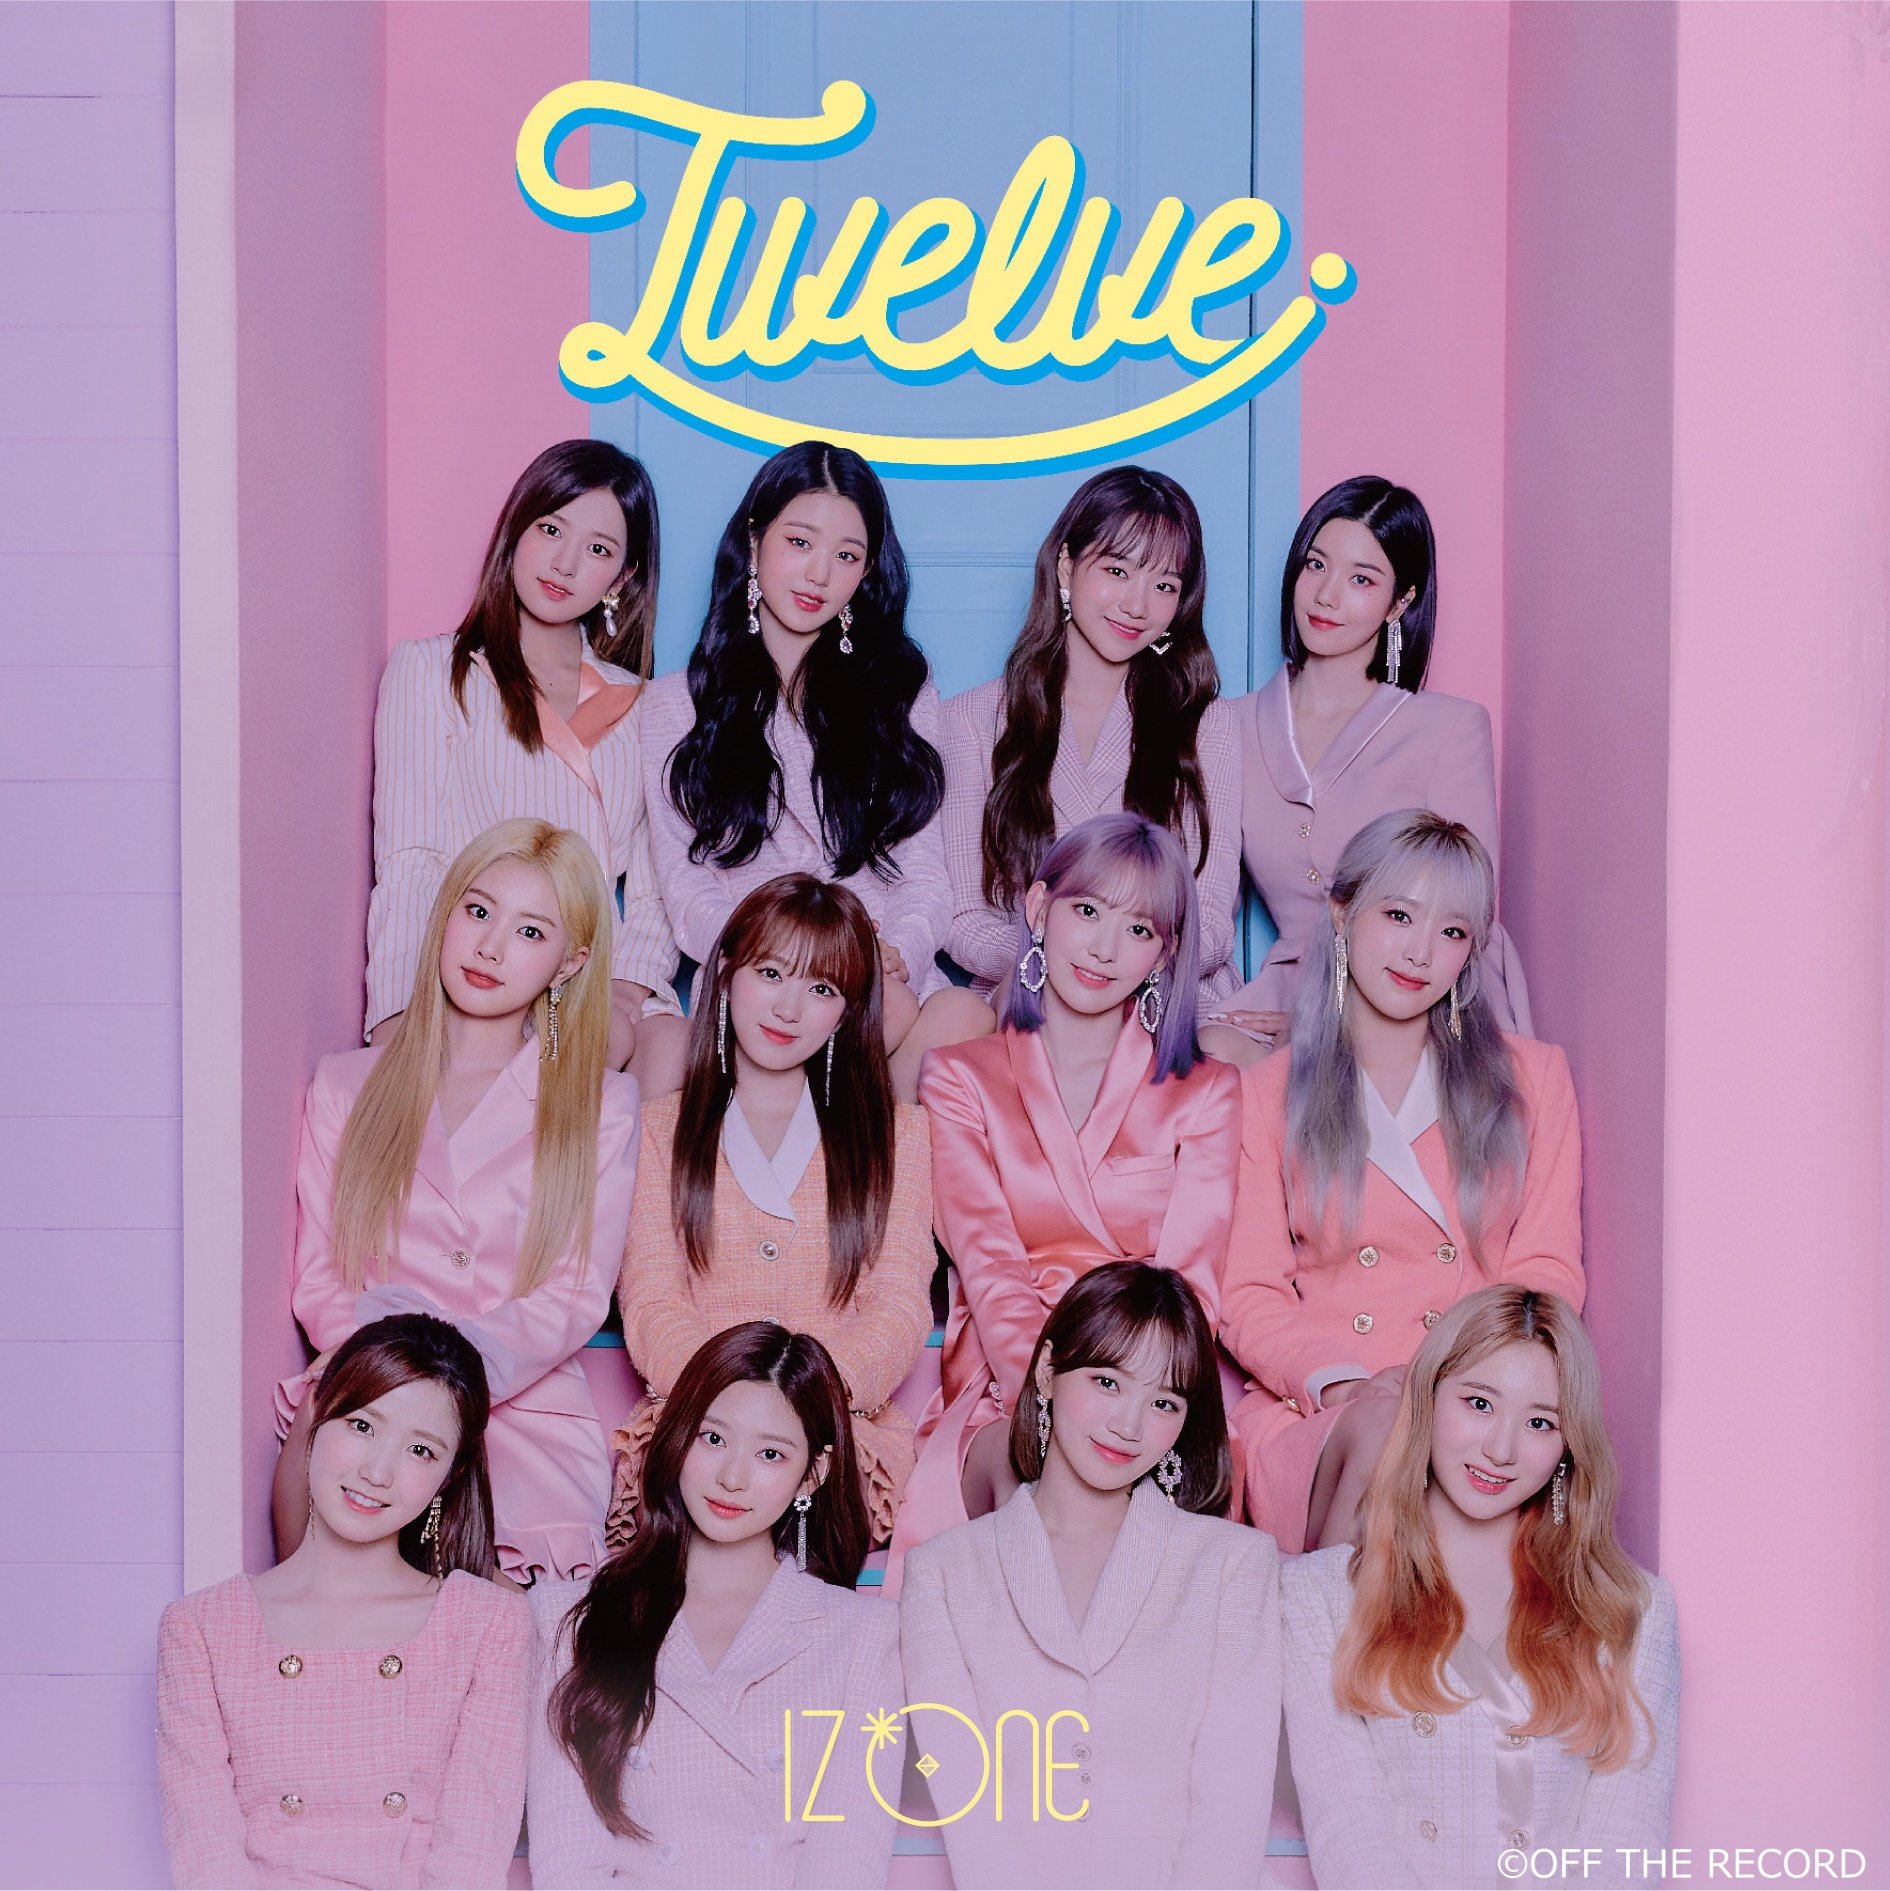 "IZ*ONE Spain #TWELVE on Twitter: ""VERSIÓN IZ*ONE JAPAN SHOP – CD [2500¥]  Comprar: https://t.co/shTbeKV08X #IZONE @official_izone #아이즈원 #アイズワン  #IZONE_Twelve… https://t.co/48vkDjAkv1"""